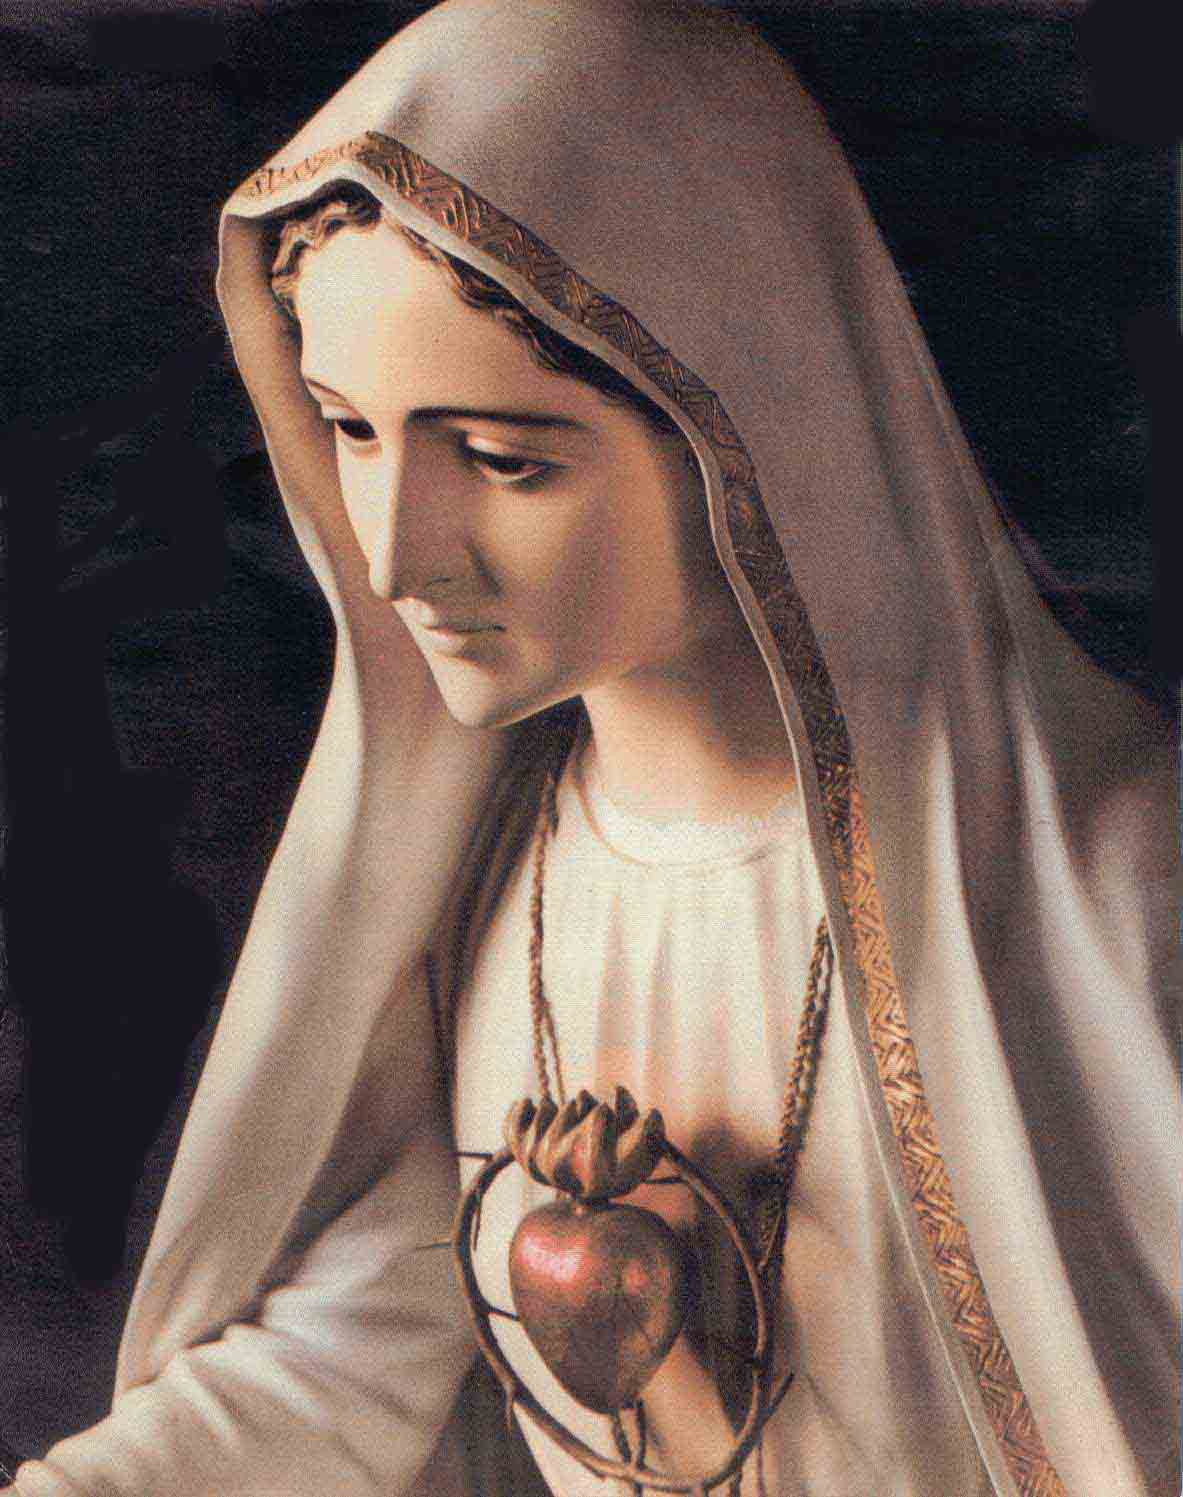 Image of Our Lady of the Rosary at Fatima